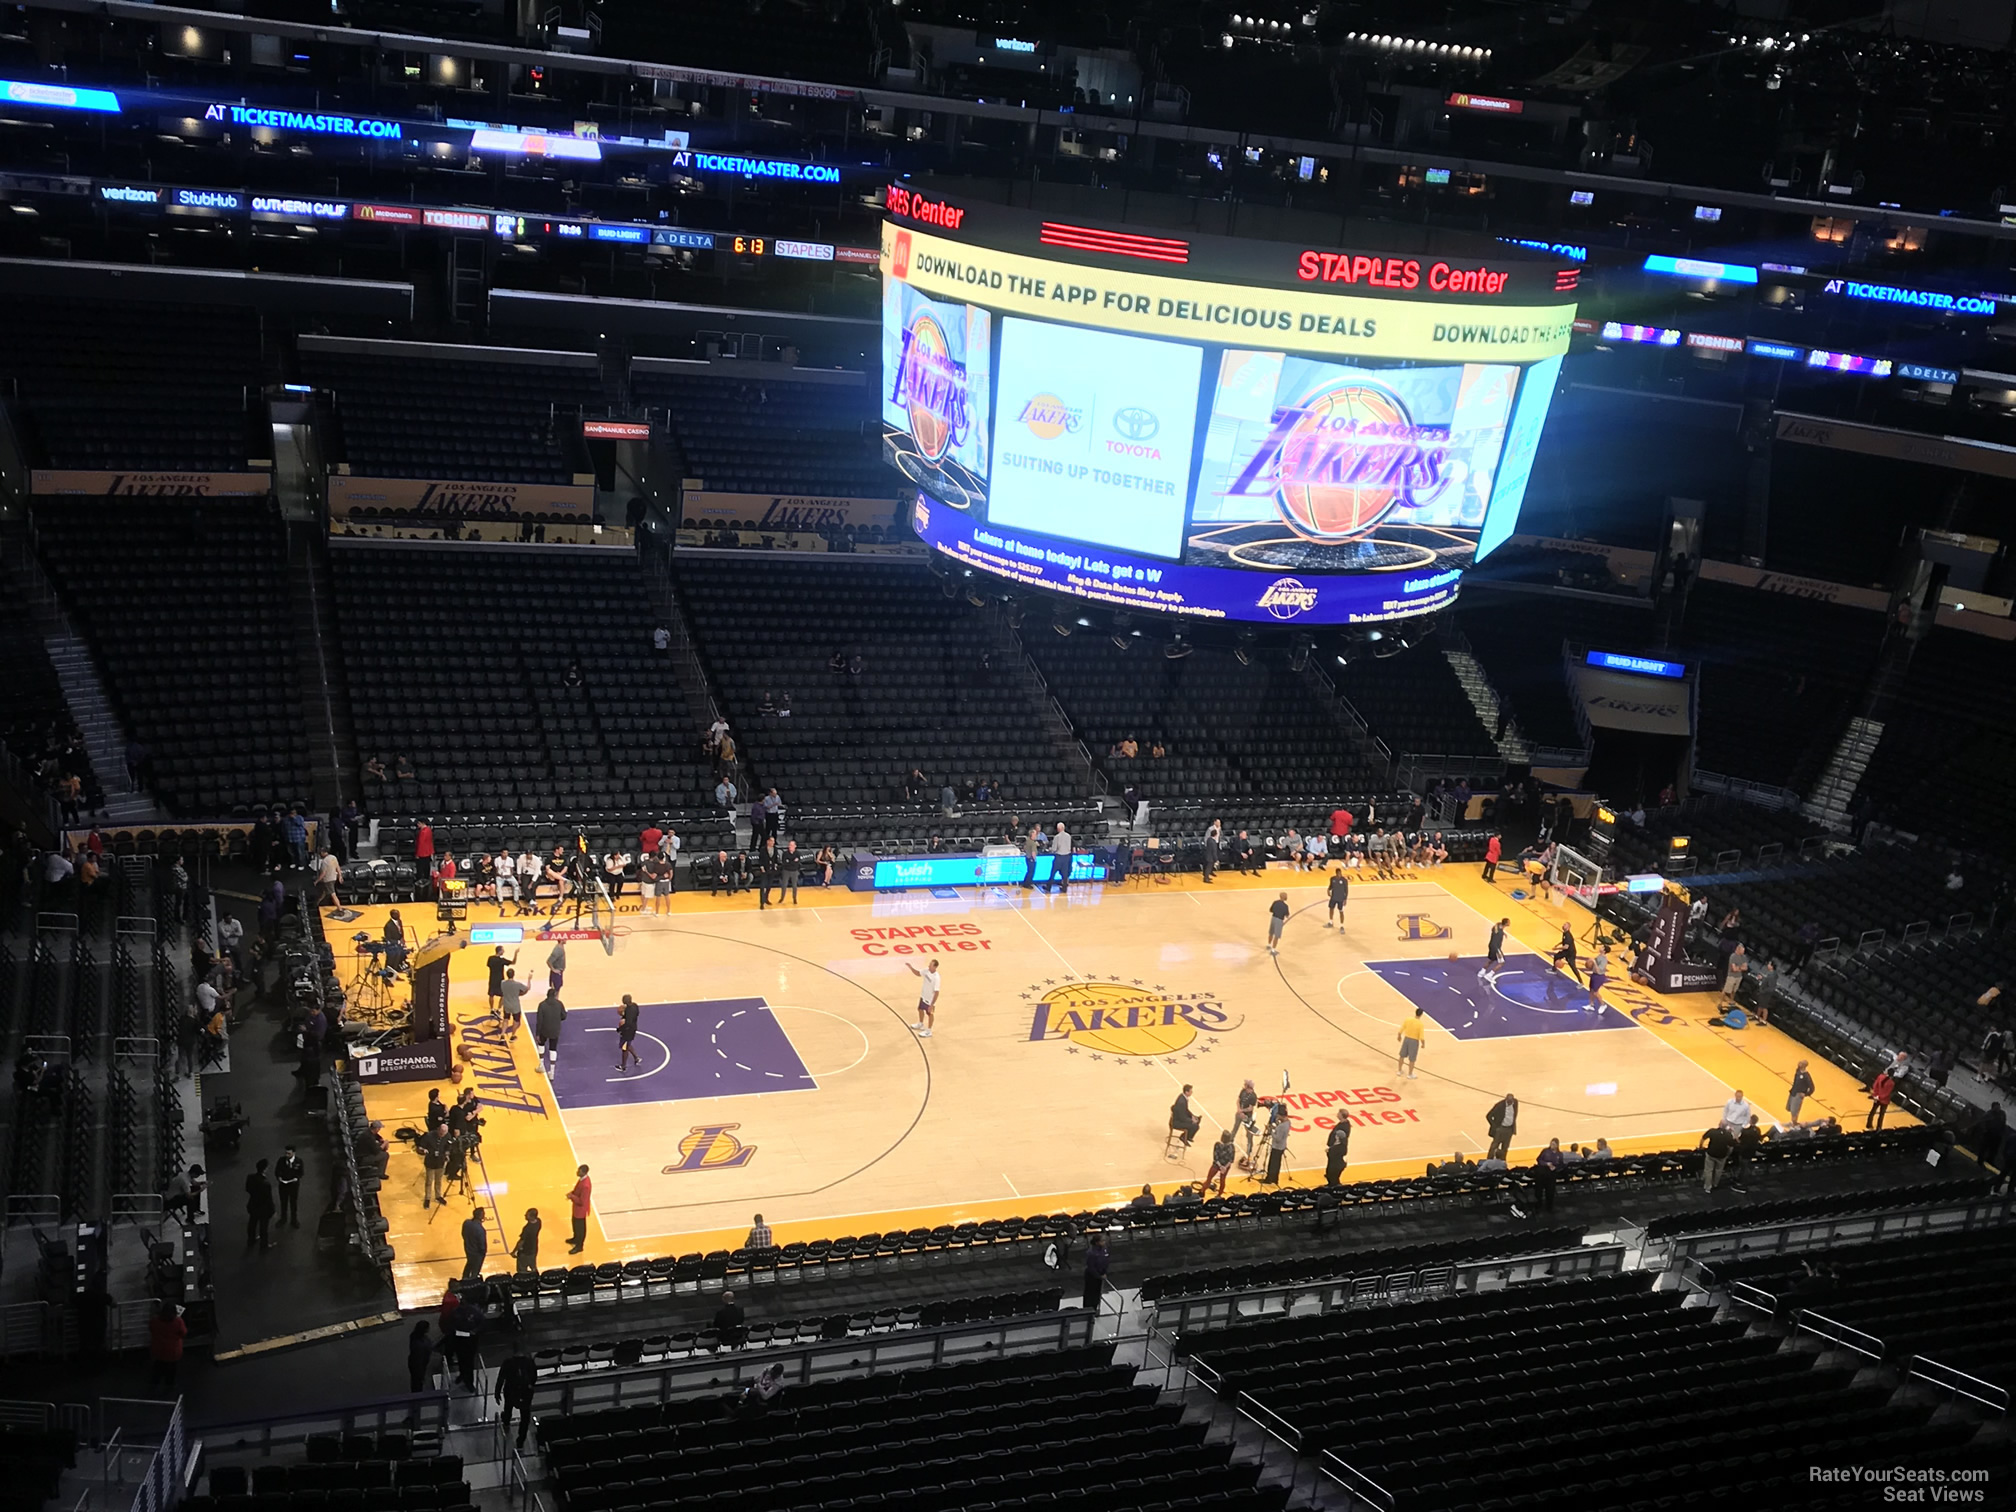 Staples Center Lakers Section 320 Row 1 on 10 2 2017f